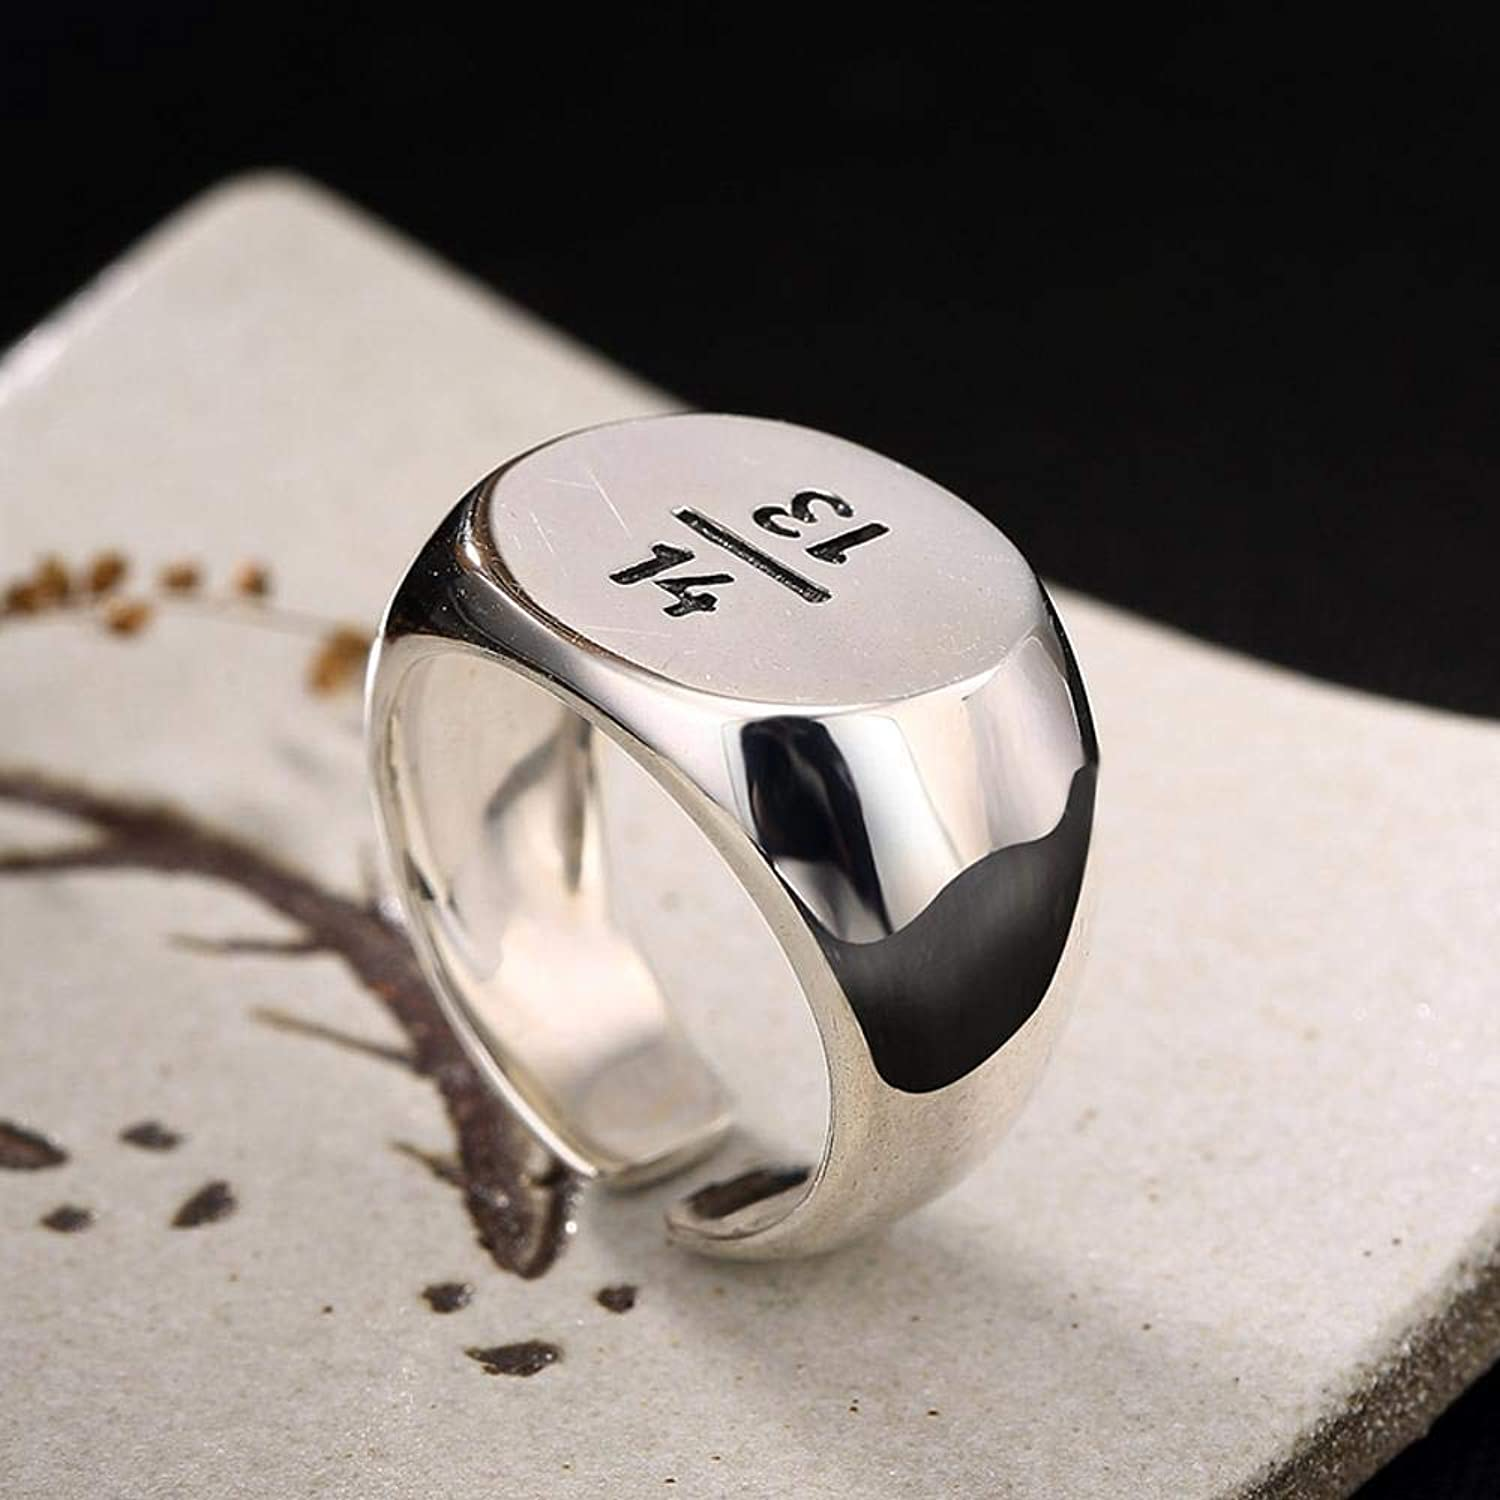 DTZH Rings Jewellery RingS925 Pure Silver Smooth Simple Retro Digital Couple Ring Give it to Dear People